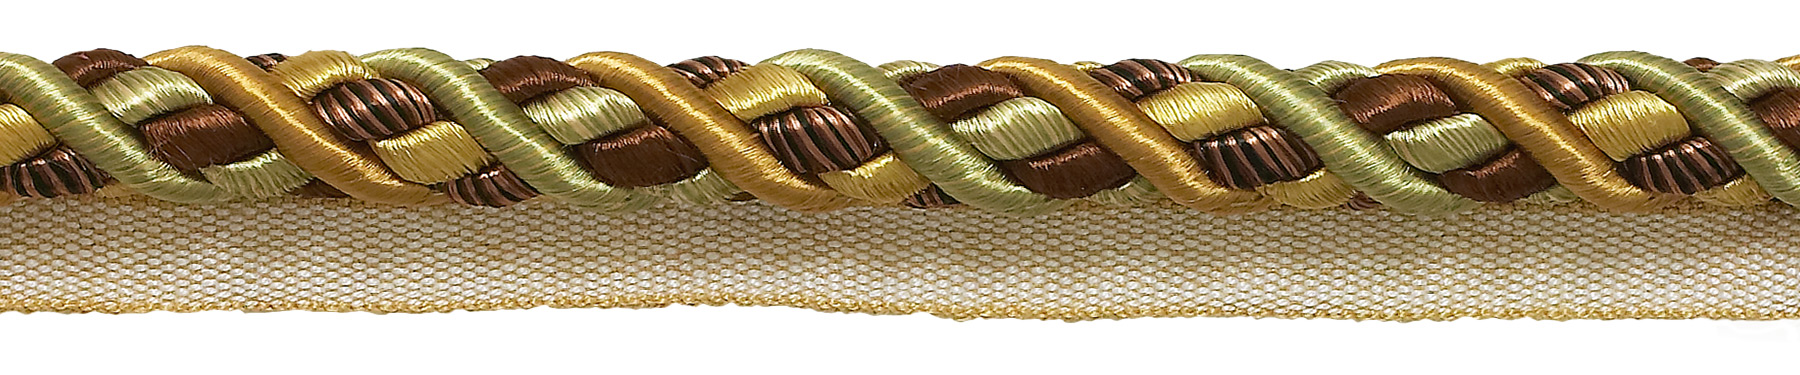 Navy Taupe 5817 36 Ft // 11M 12 Yard Value Pack of Small Navy Blue Taupe Baroque Collection 3//16 inch Decorative Cord Without Lip Style# 316BNLPK Color